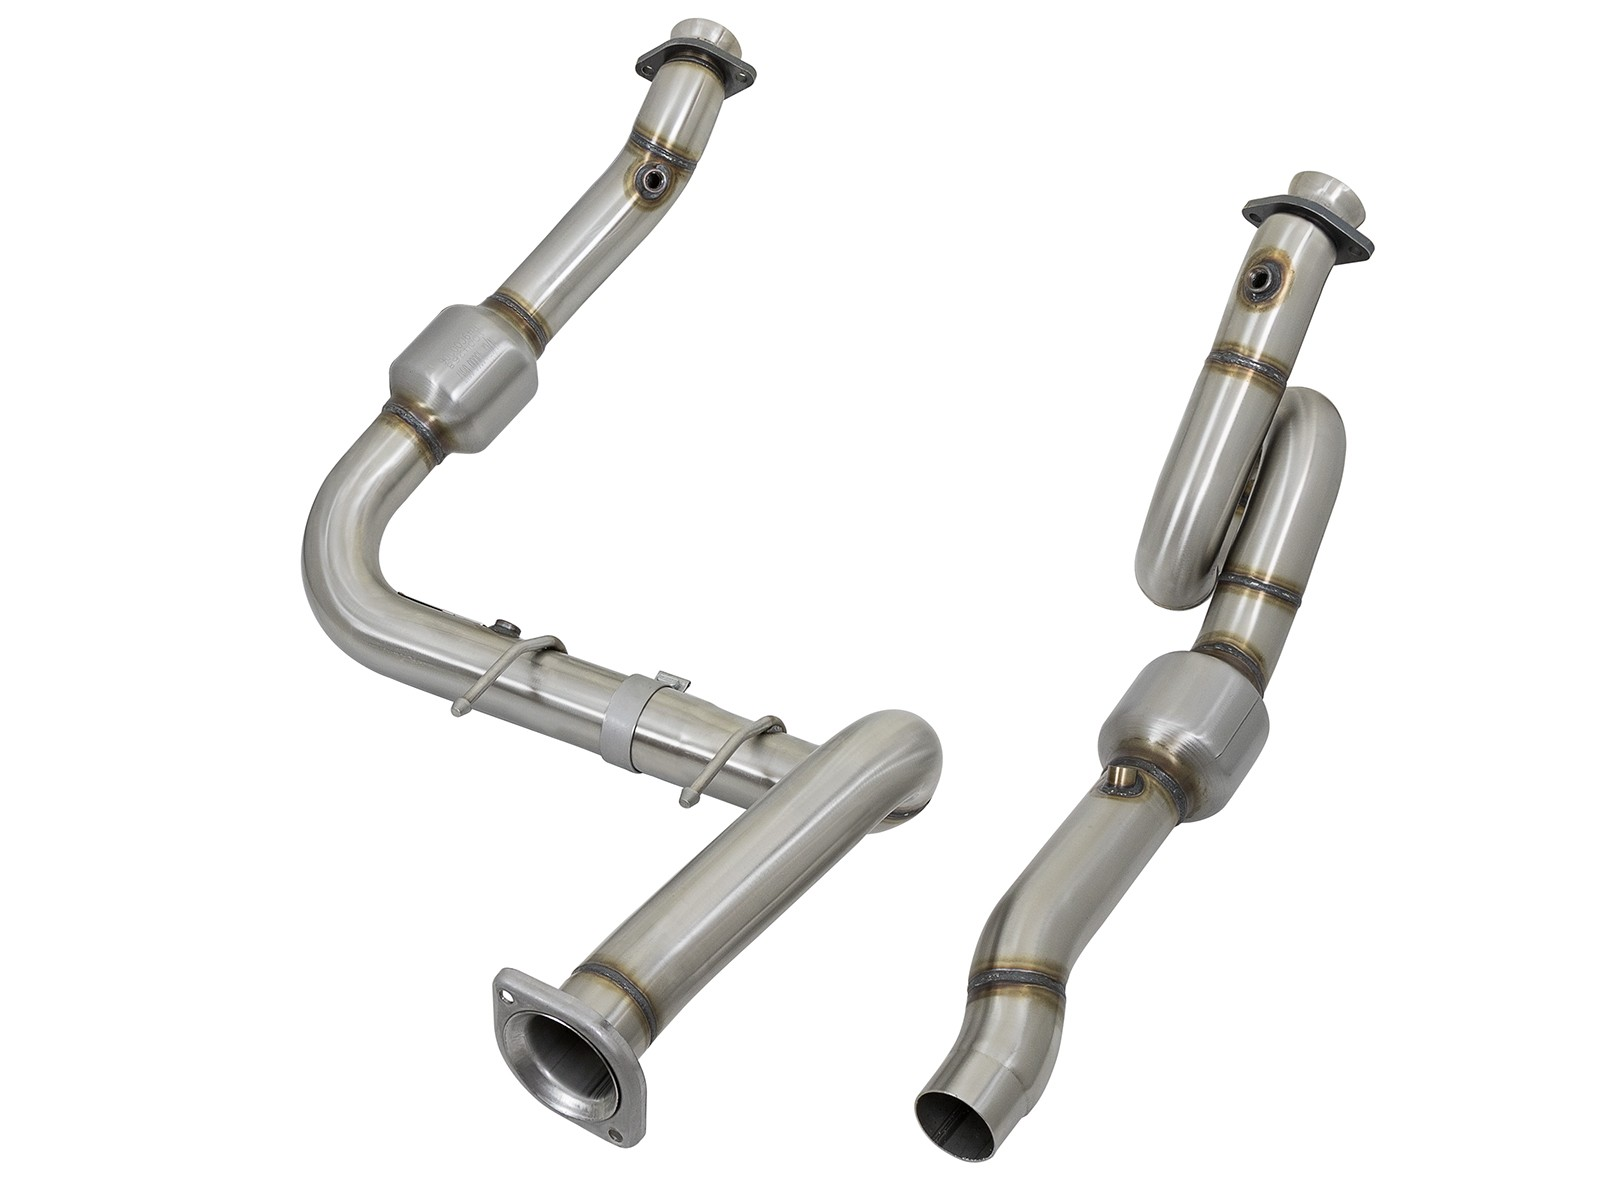 1-1//2 17GA Brass with Box Escutcheon Chrome Plated for Tubular Drain Applications 1-1//2 in Highcraft 34J38-L S-Trap with Flange